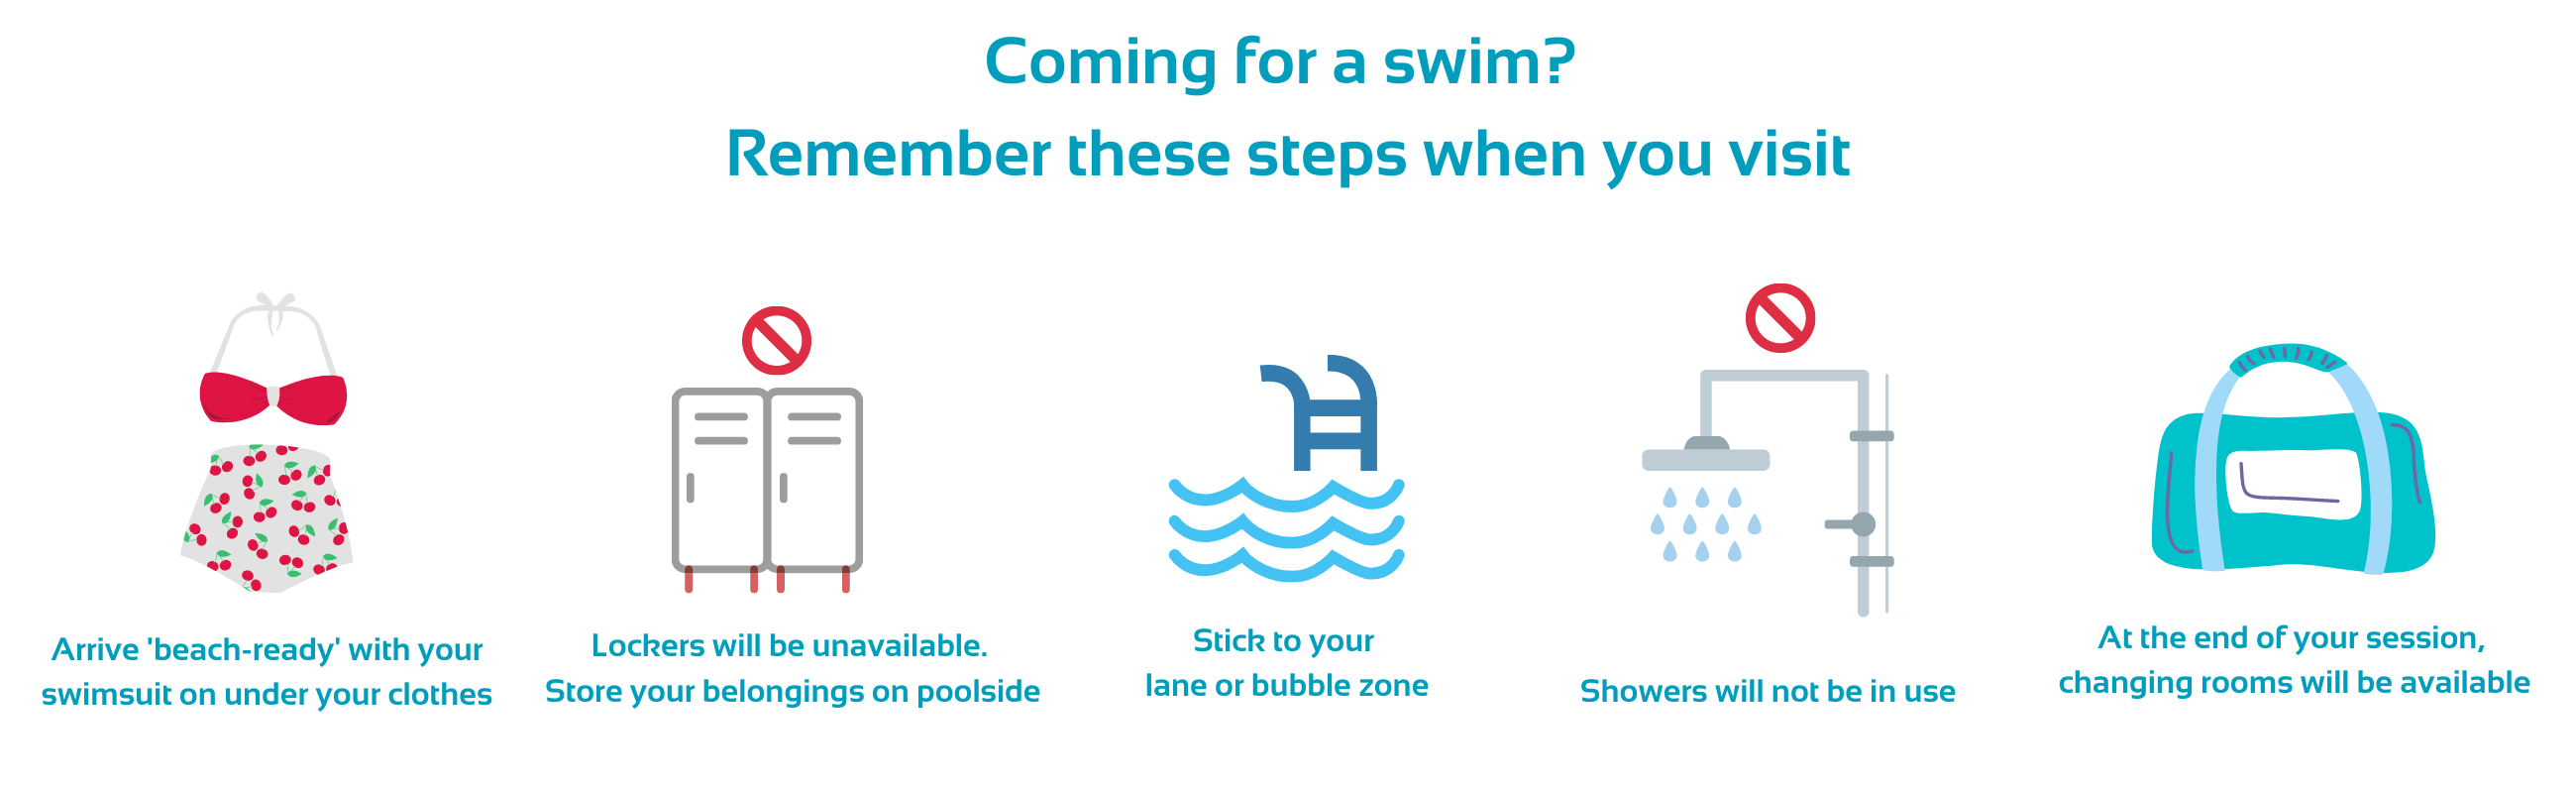 an infographic of steps to take when coming for a swim. full details in text below